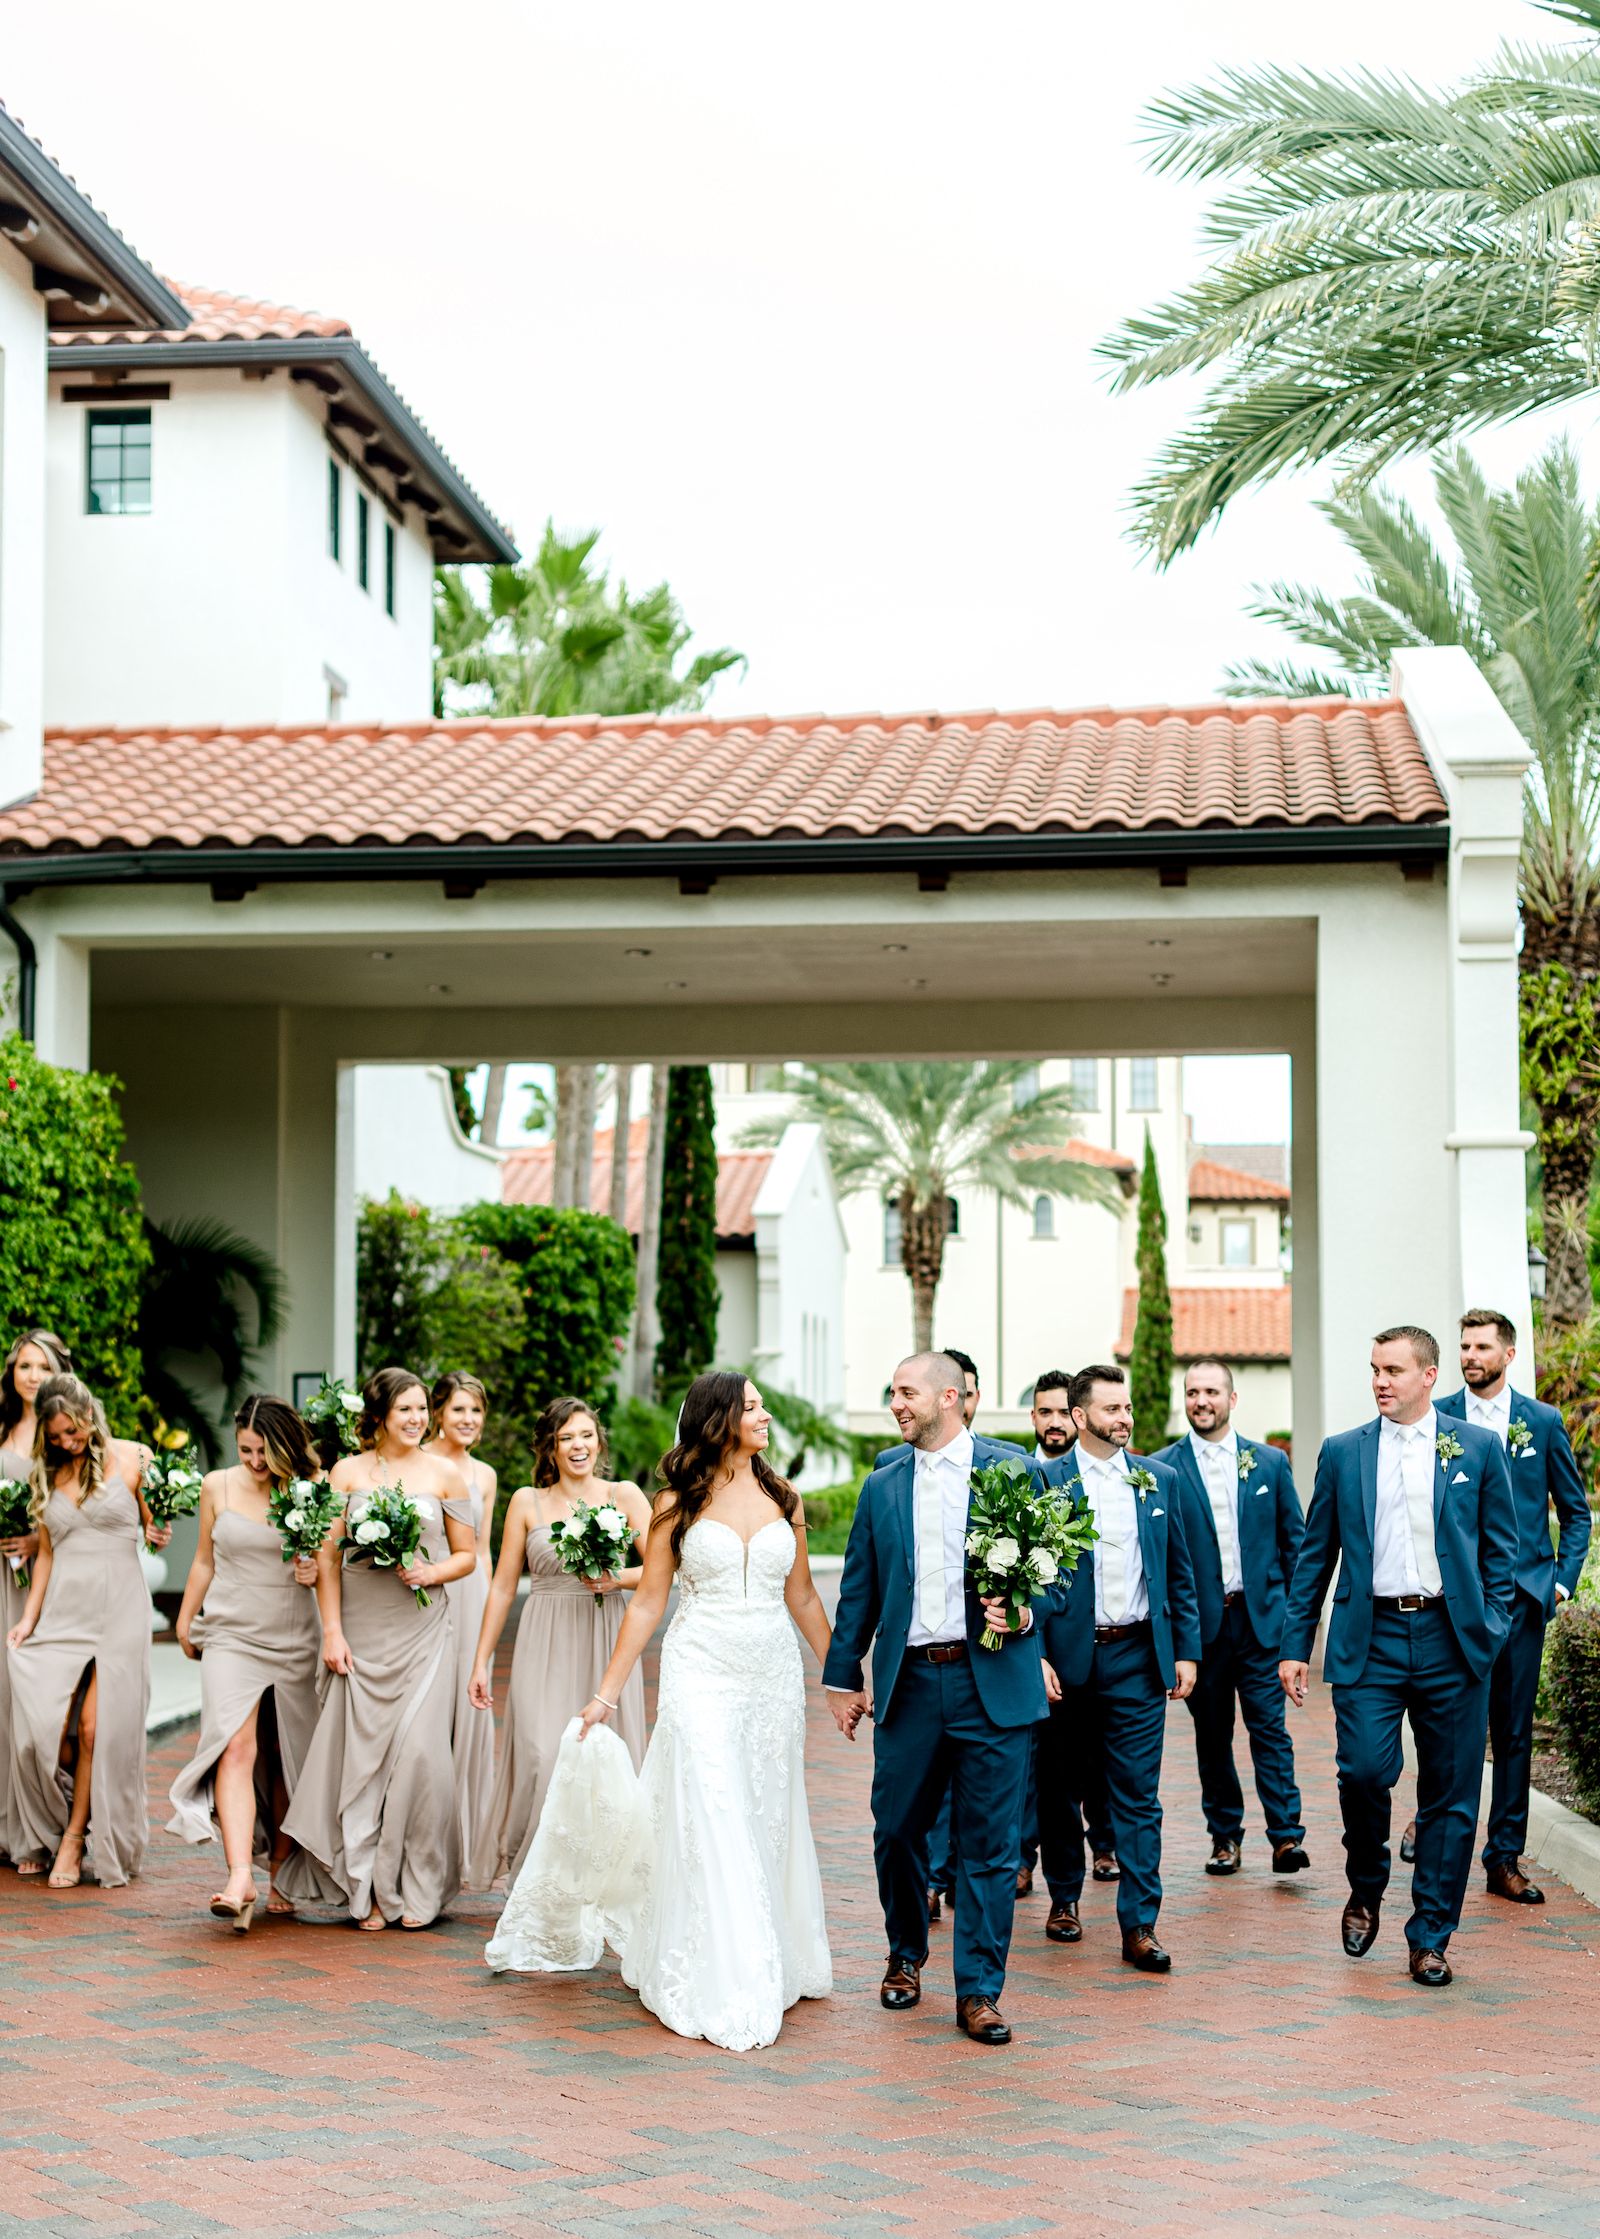 Wedding Party Outdoor Portrait at Tampa wedding Venue Westshore Yacht Club | Lace Strapless Sweetheart Scalloped Edge Train Wedding Dress Bridal Gown | Groom and Groomsmen Wearing Classic Navy Suit | Long Chiffon Taupe Champagne Neutral Bridesmaid Dresses by Lulu's | Dewitt for Love Photography